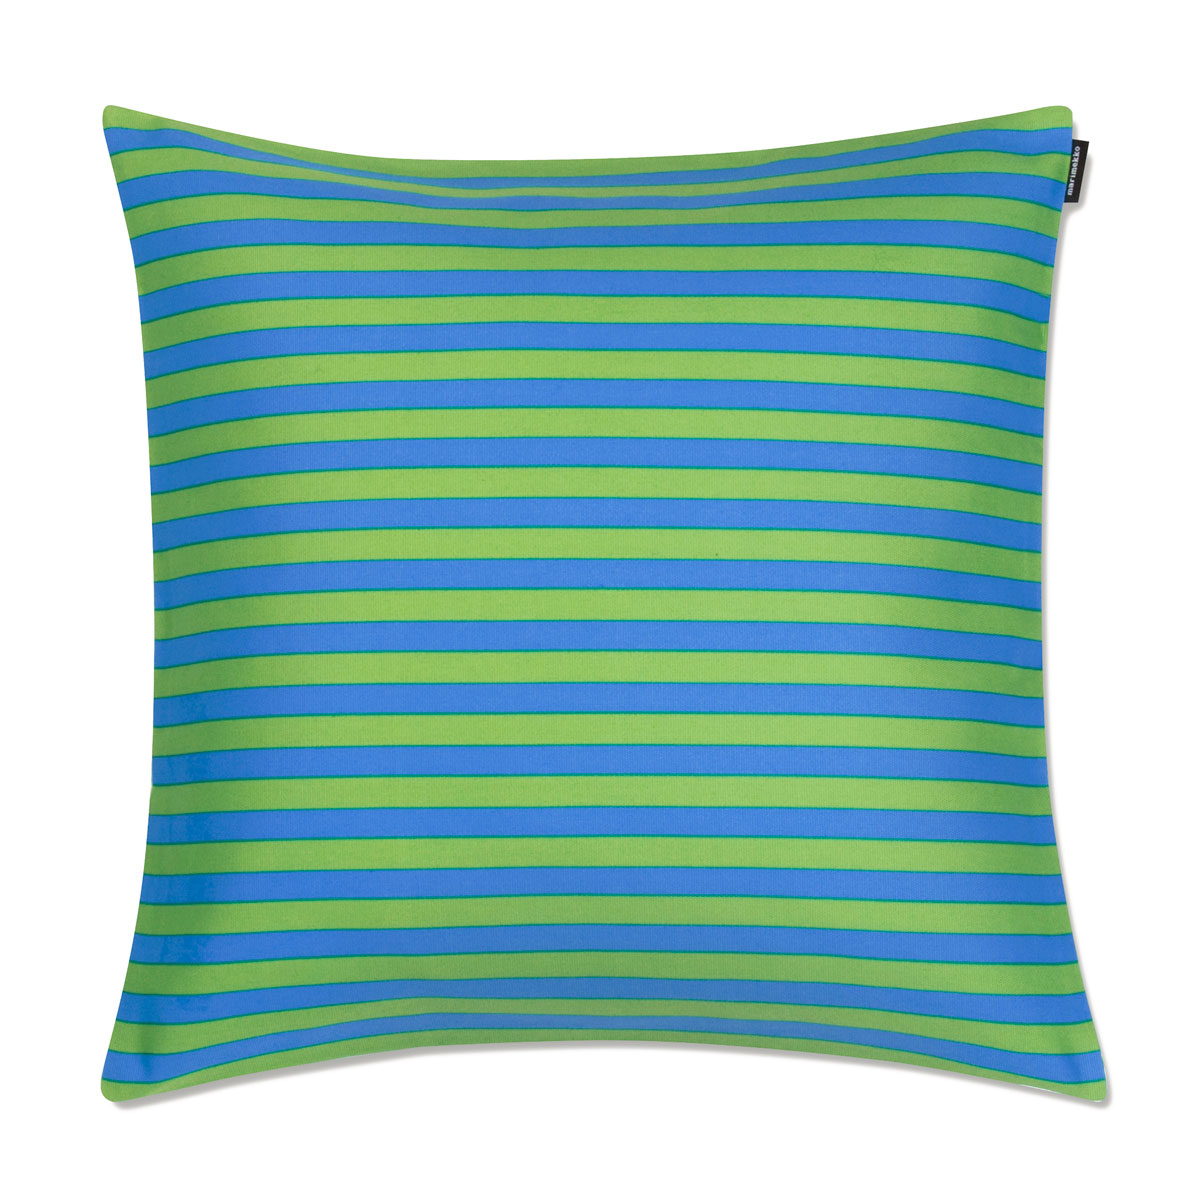 features textured throw this blue pin green front with pillows zippered j pillow accents turquoise weave button accented reverse